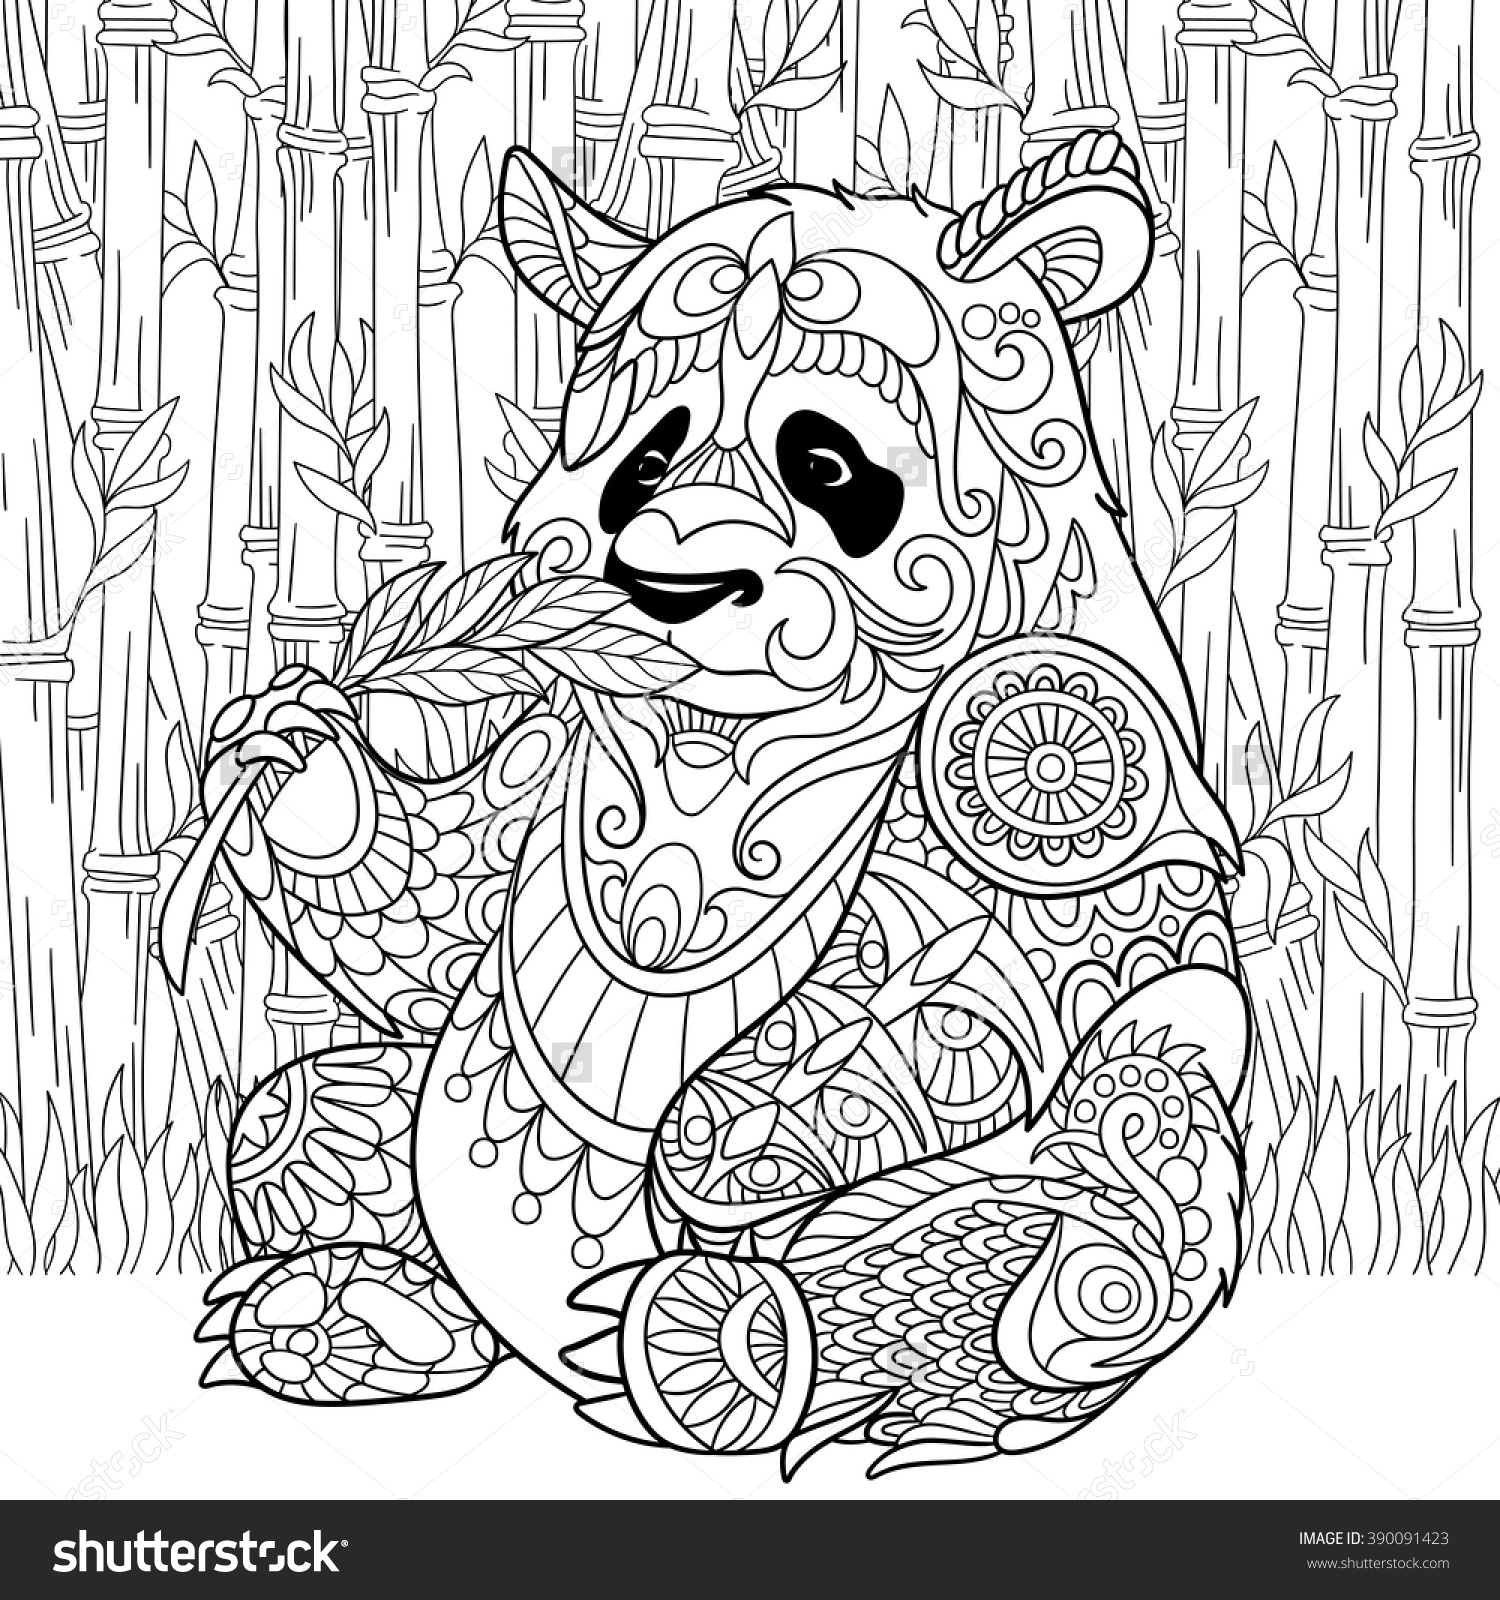 1500x1600 Fresh Zentangle Stylized Cartoon Panda Sitting Among Bamboo Stems